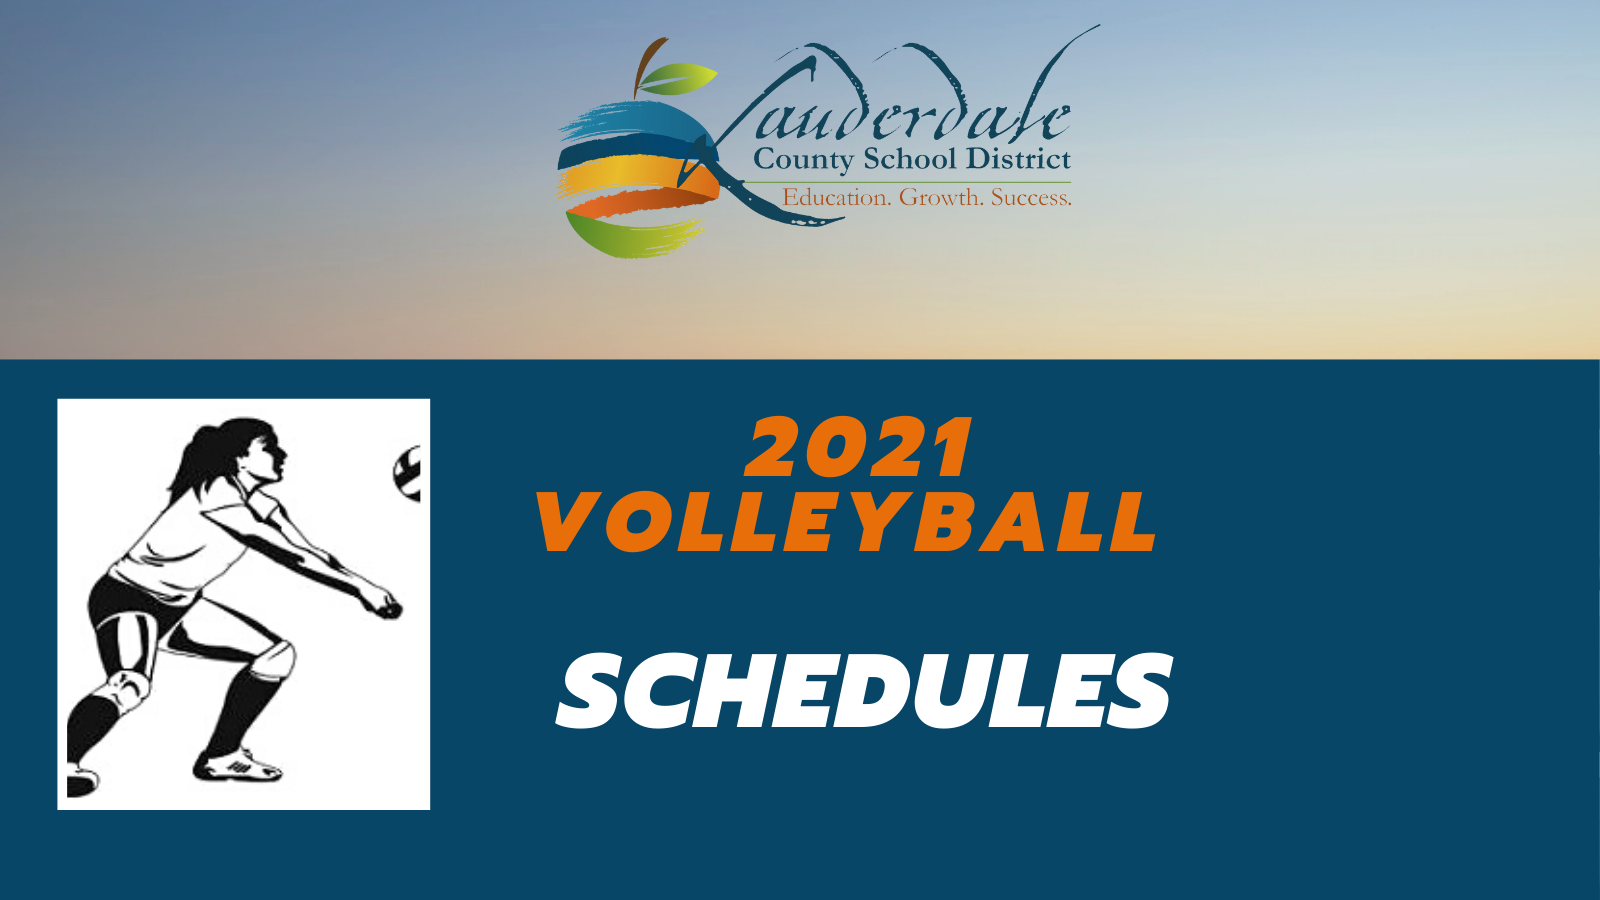 LCSD 2021 Volleyball Schedules Graphic